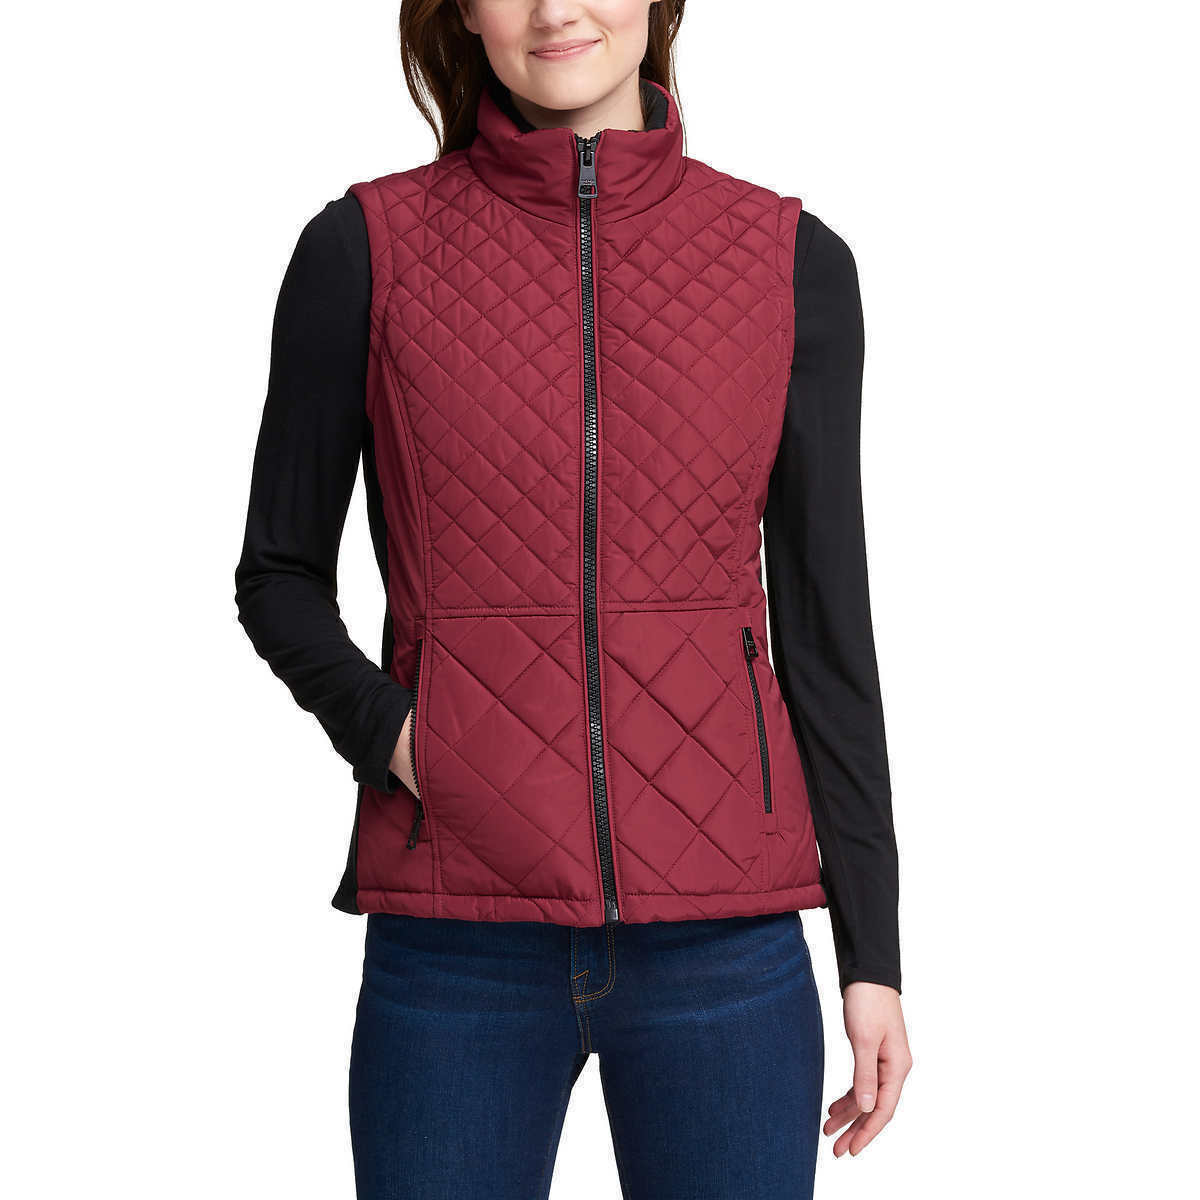 NEW Andrew Marc Women's Beet Red Quilted Insulated Zip Up Vest